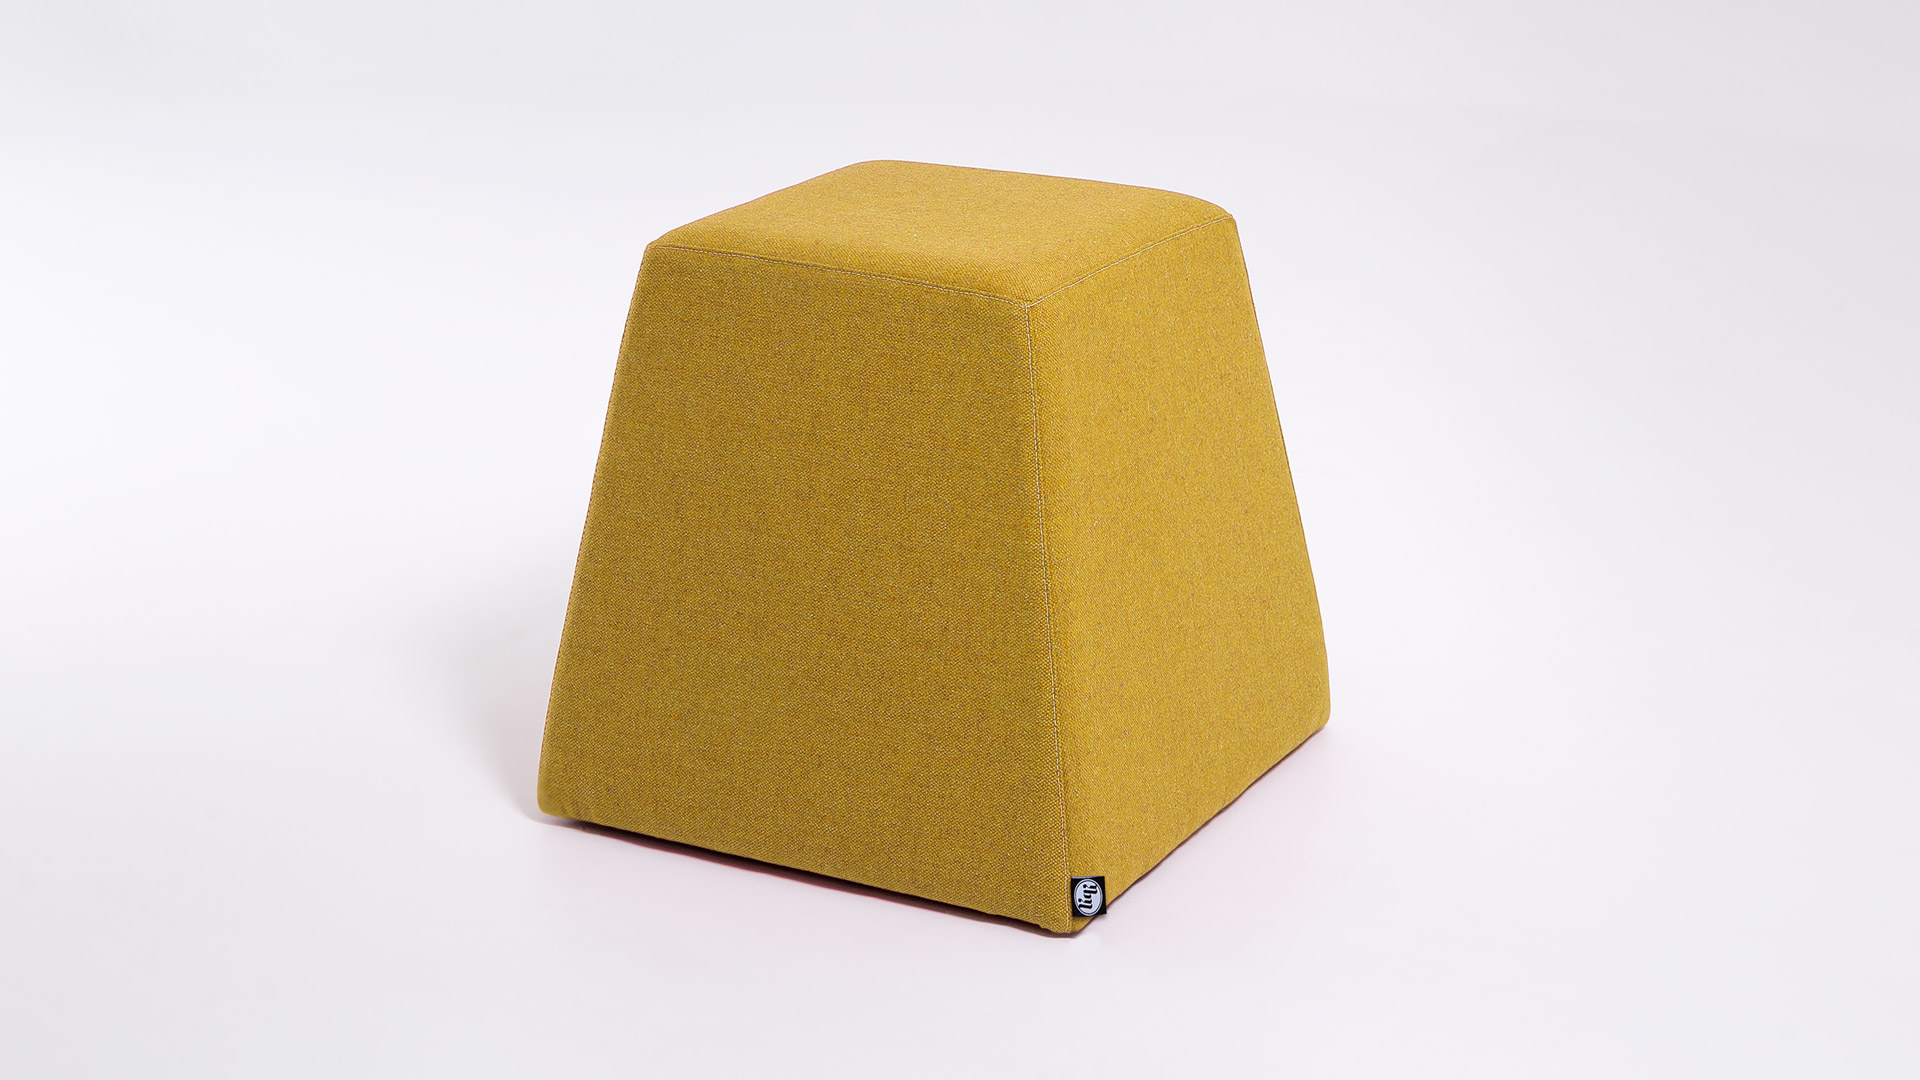 Padded Stool Upholstered Stools Office Breakout Furniture Padded Stool